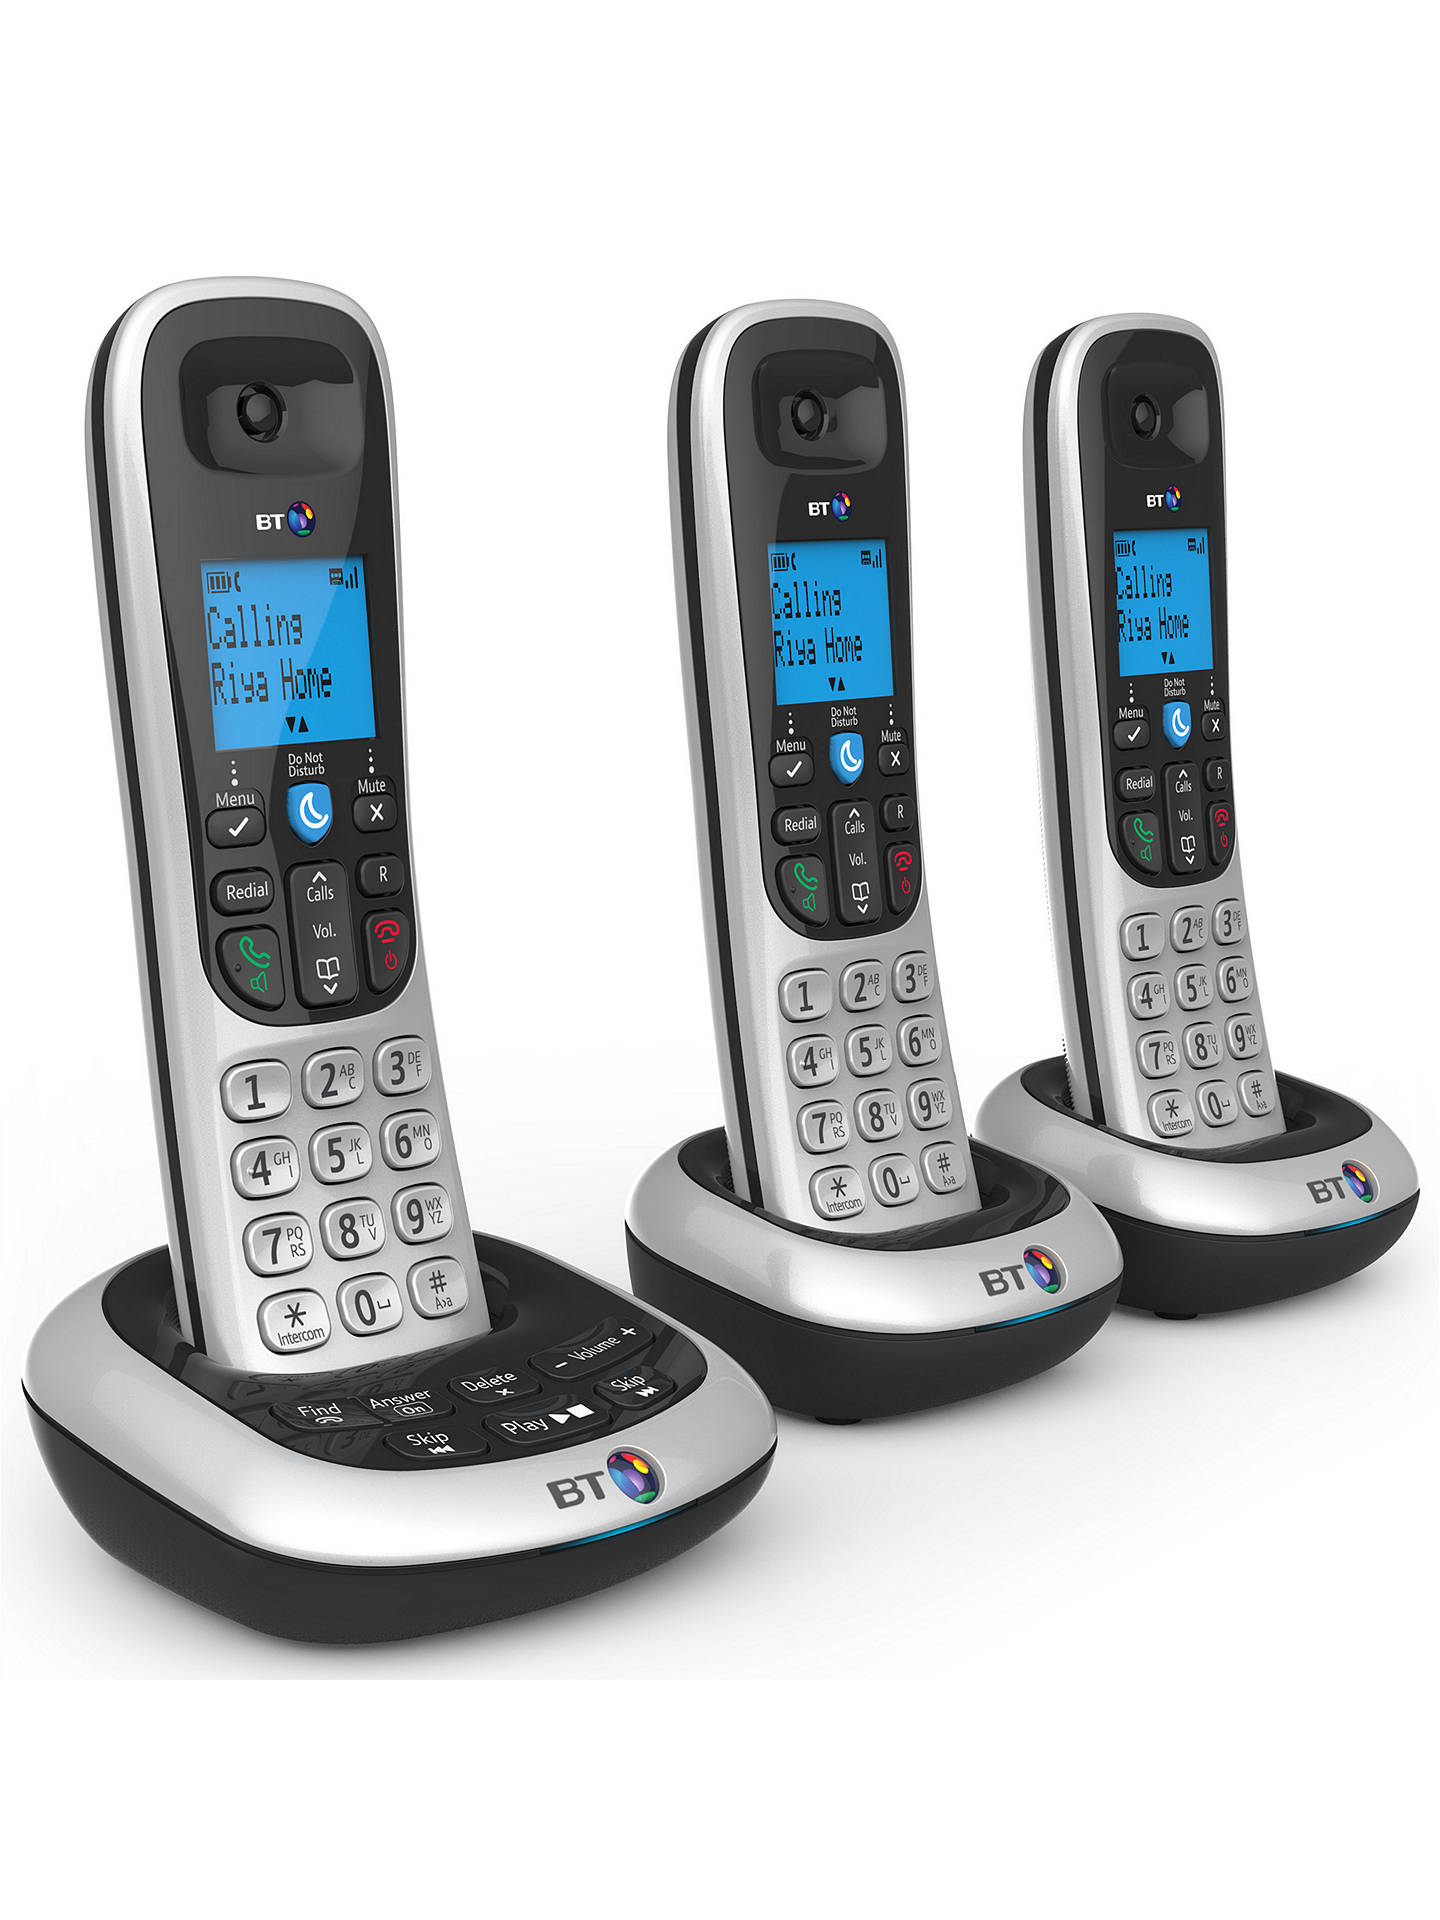 BT 2700 Digital Cordless Phone with Answering Machine, Trio DECT at John Lewis & Partners